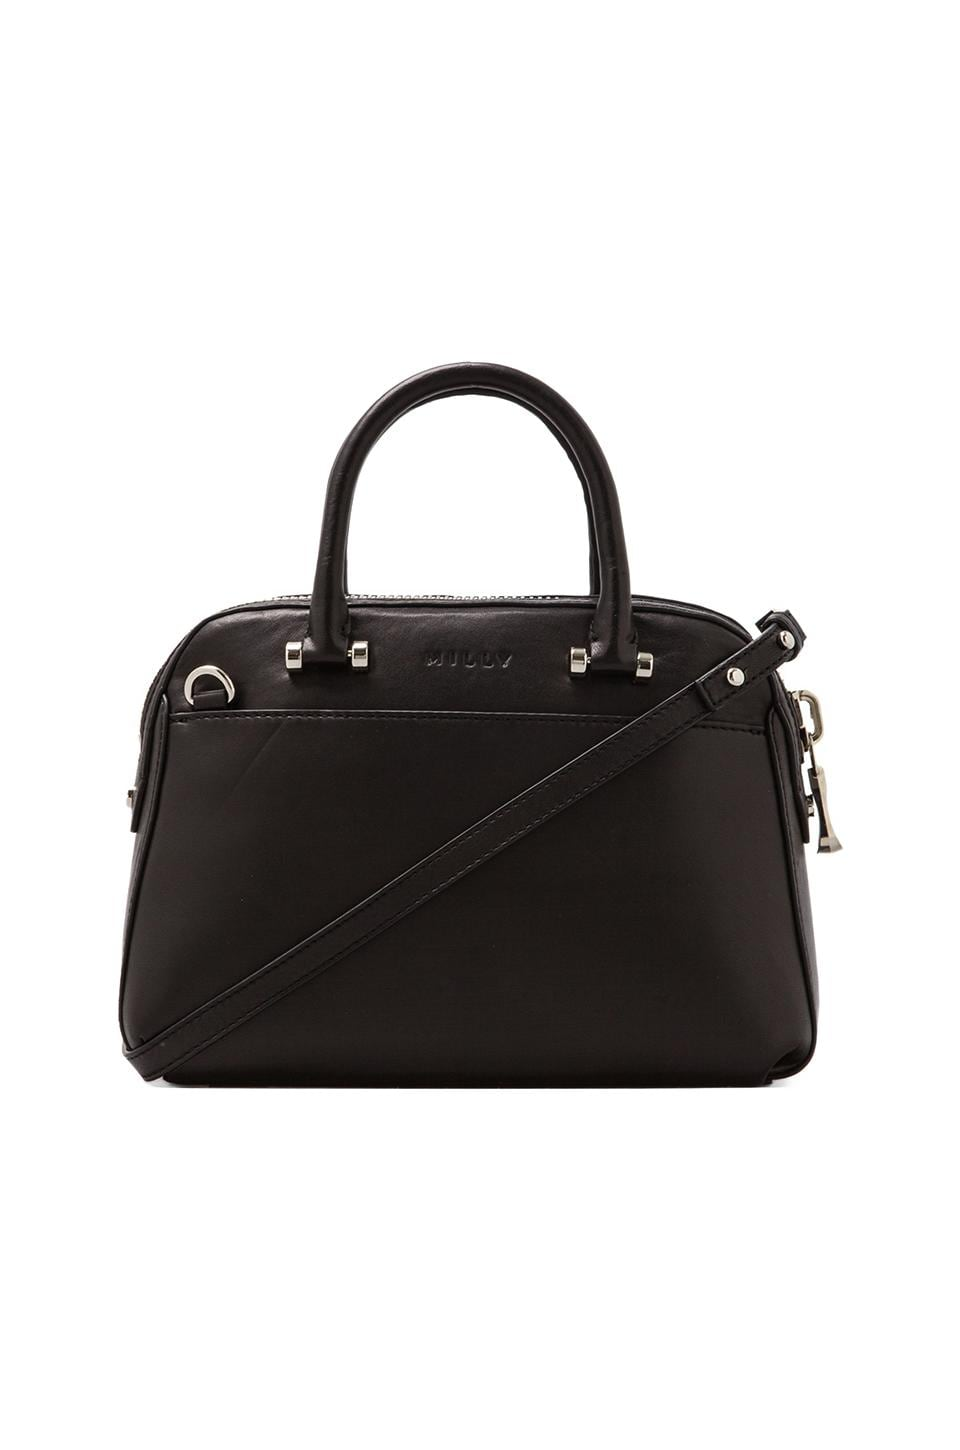 MILLY Blake Collection Small Satchel in Black